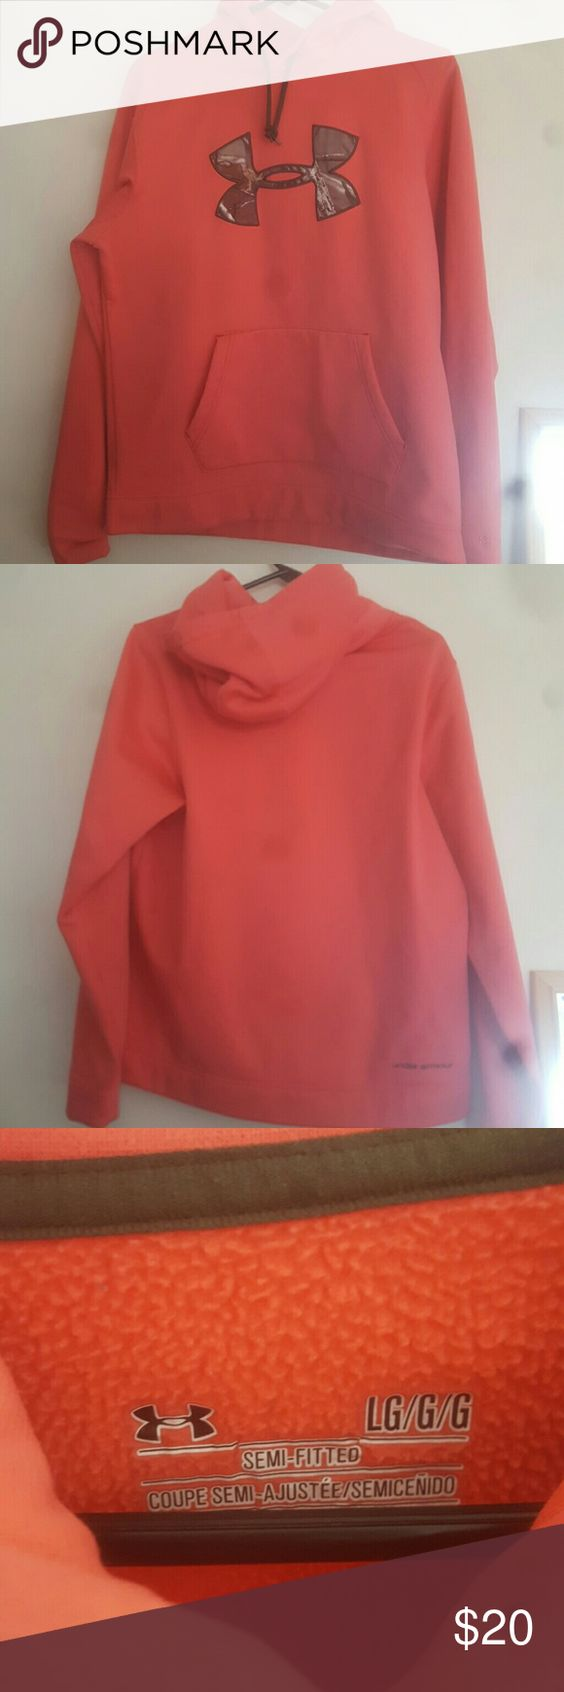 under armour cold gear hoodie gently used , semi fitted, storm technology says large fits more like a medium, salmon pink color with camo logo Under Armour Jackets & Coats